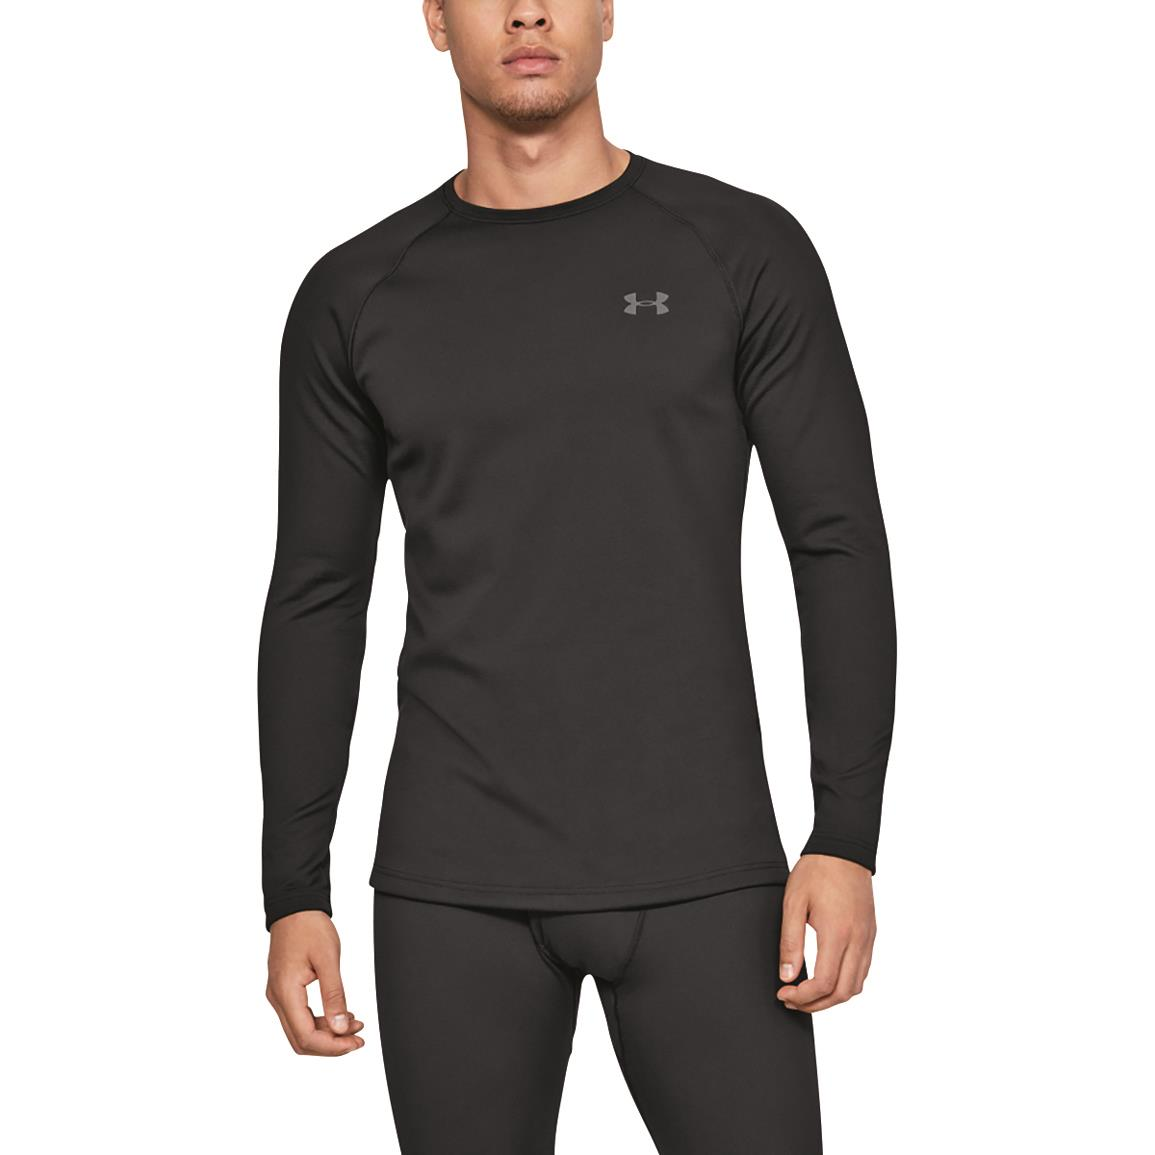 Under Armour Men's Base 3.0 Base Layer Crew Top, Black/pitch Gray